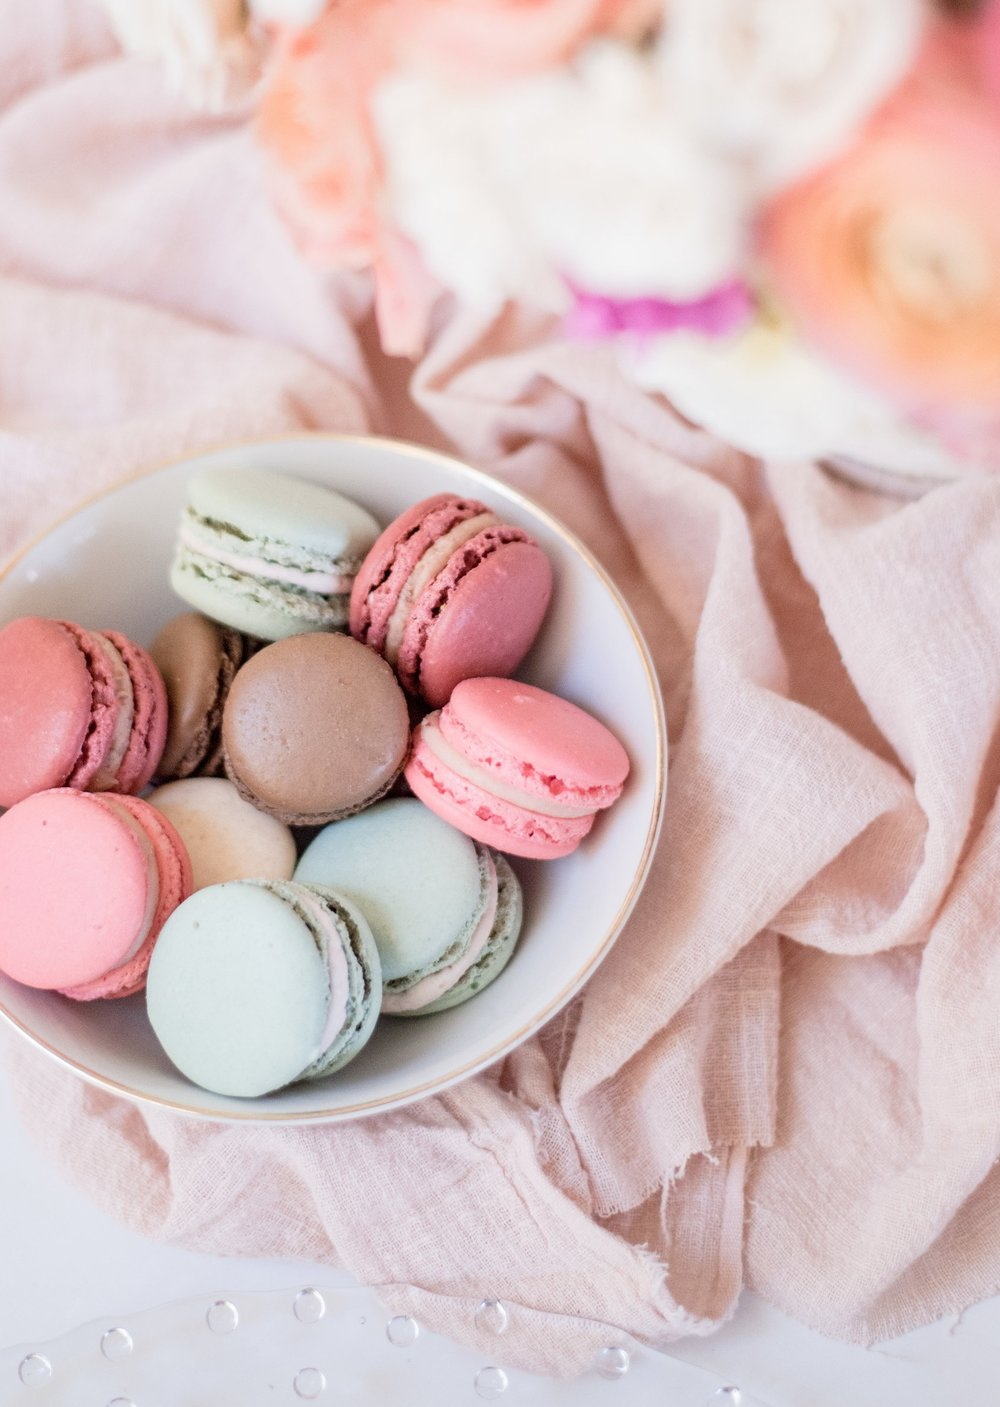 Quick tip: You can easily grab yummy (and pretty) macarons from Trader Joe's or a bakery!